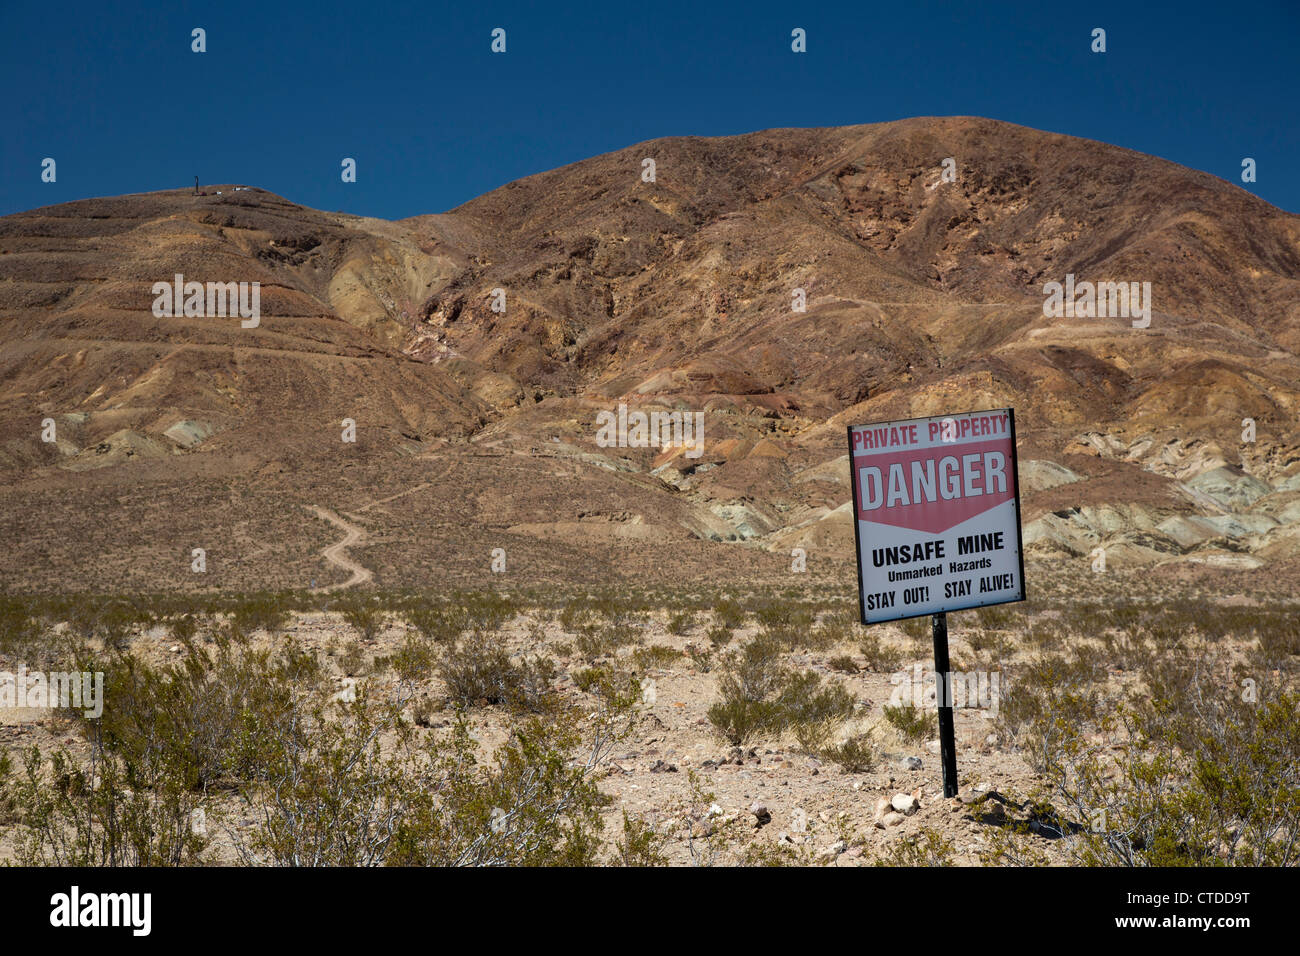 Barstow, California - A sign warns visitors to stay away from unsafe mines in the Mojave Desert. - Stock Image